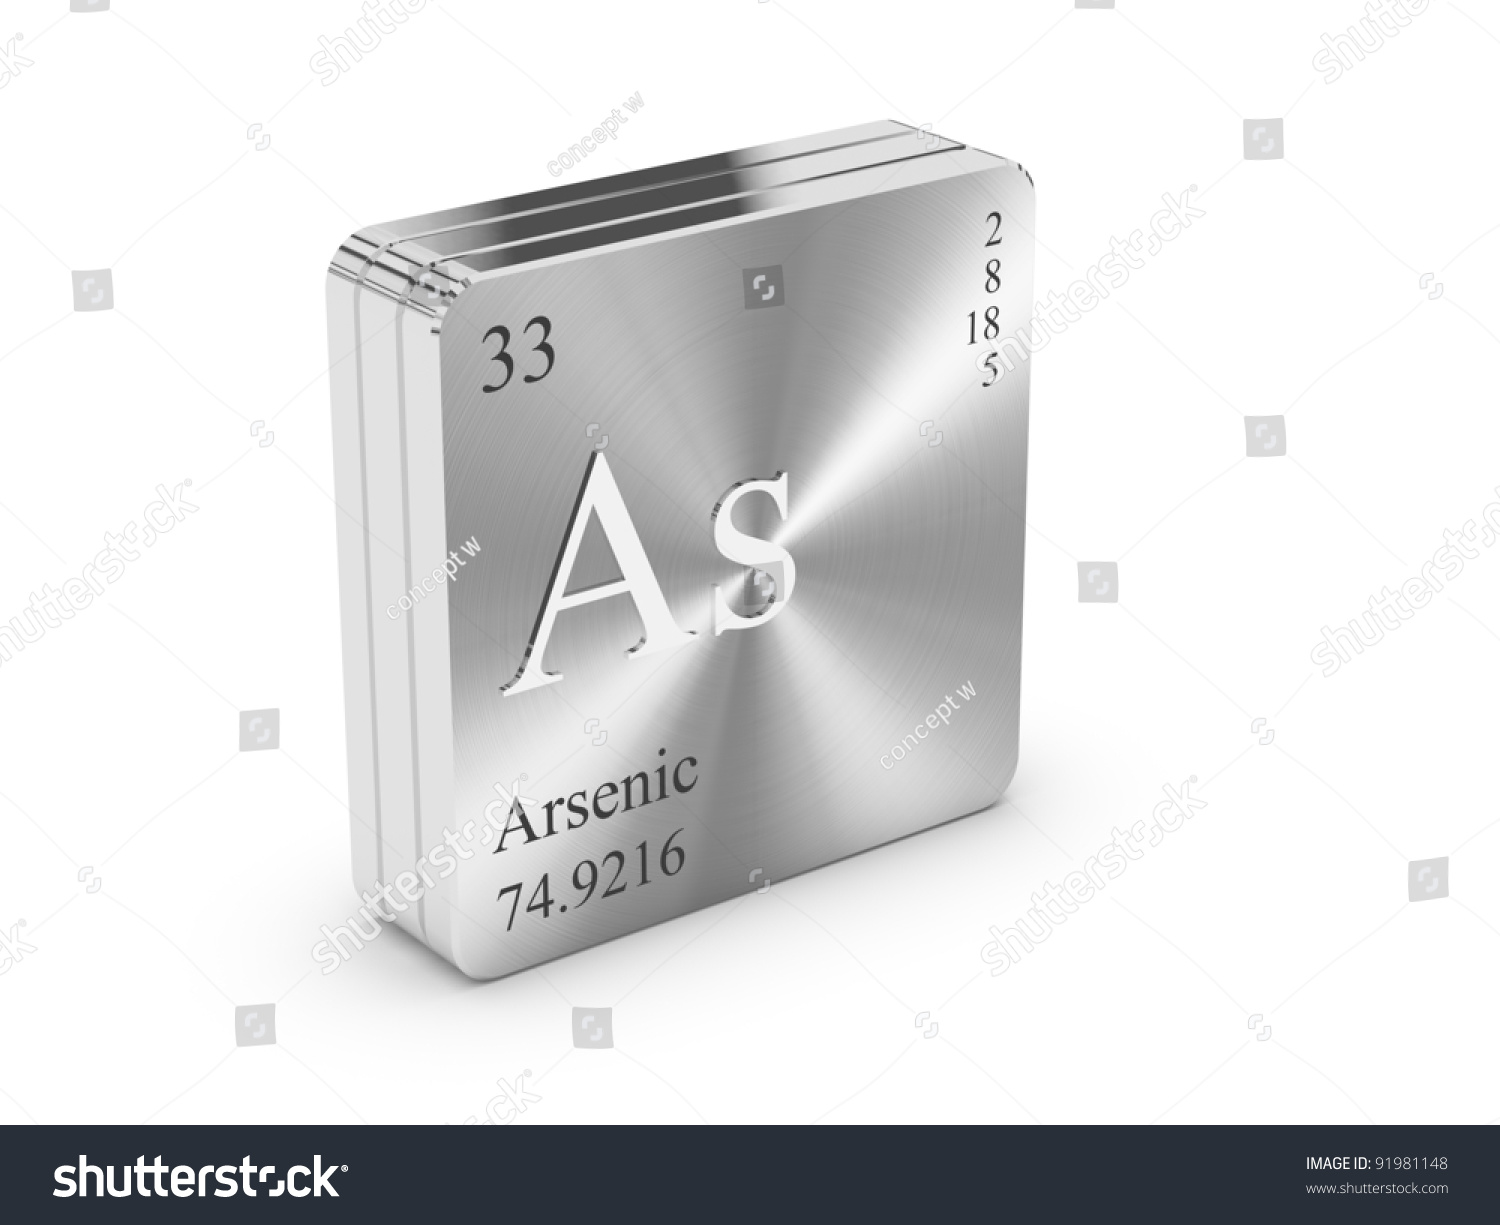 Arsenic element periodic table on metal stock illustration arsenic element of the periodic table on metal steel block biocorpaavc Image collections